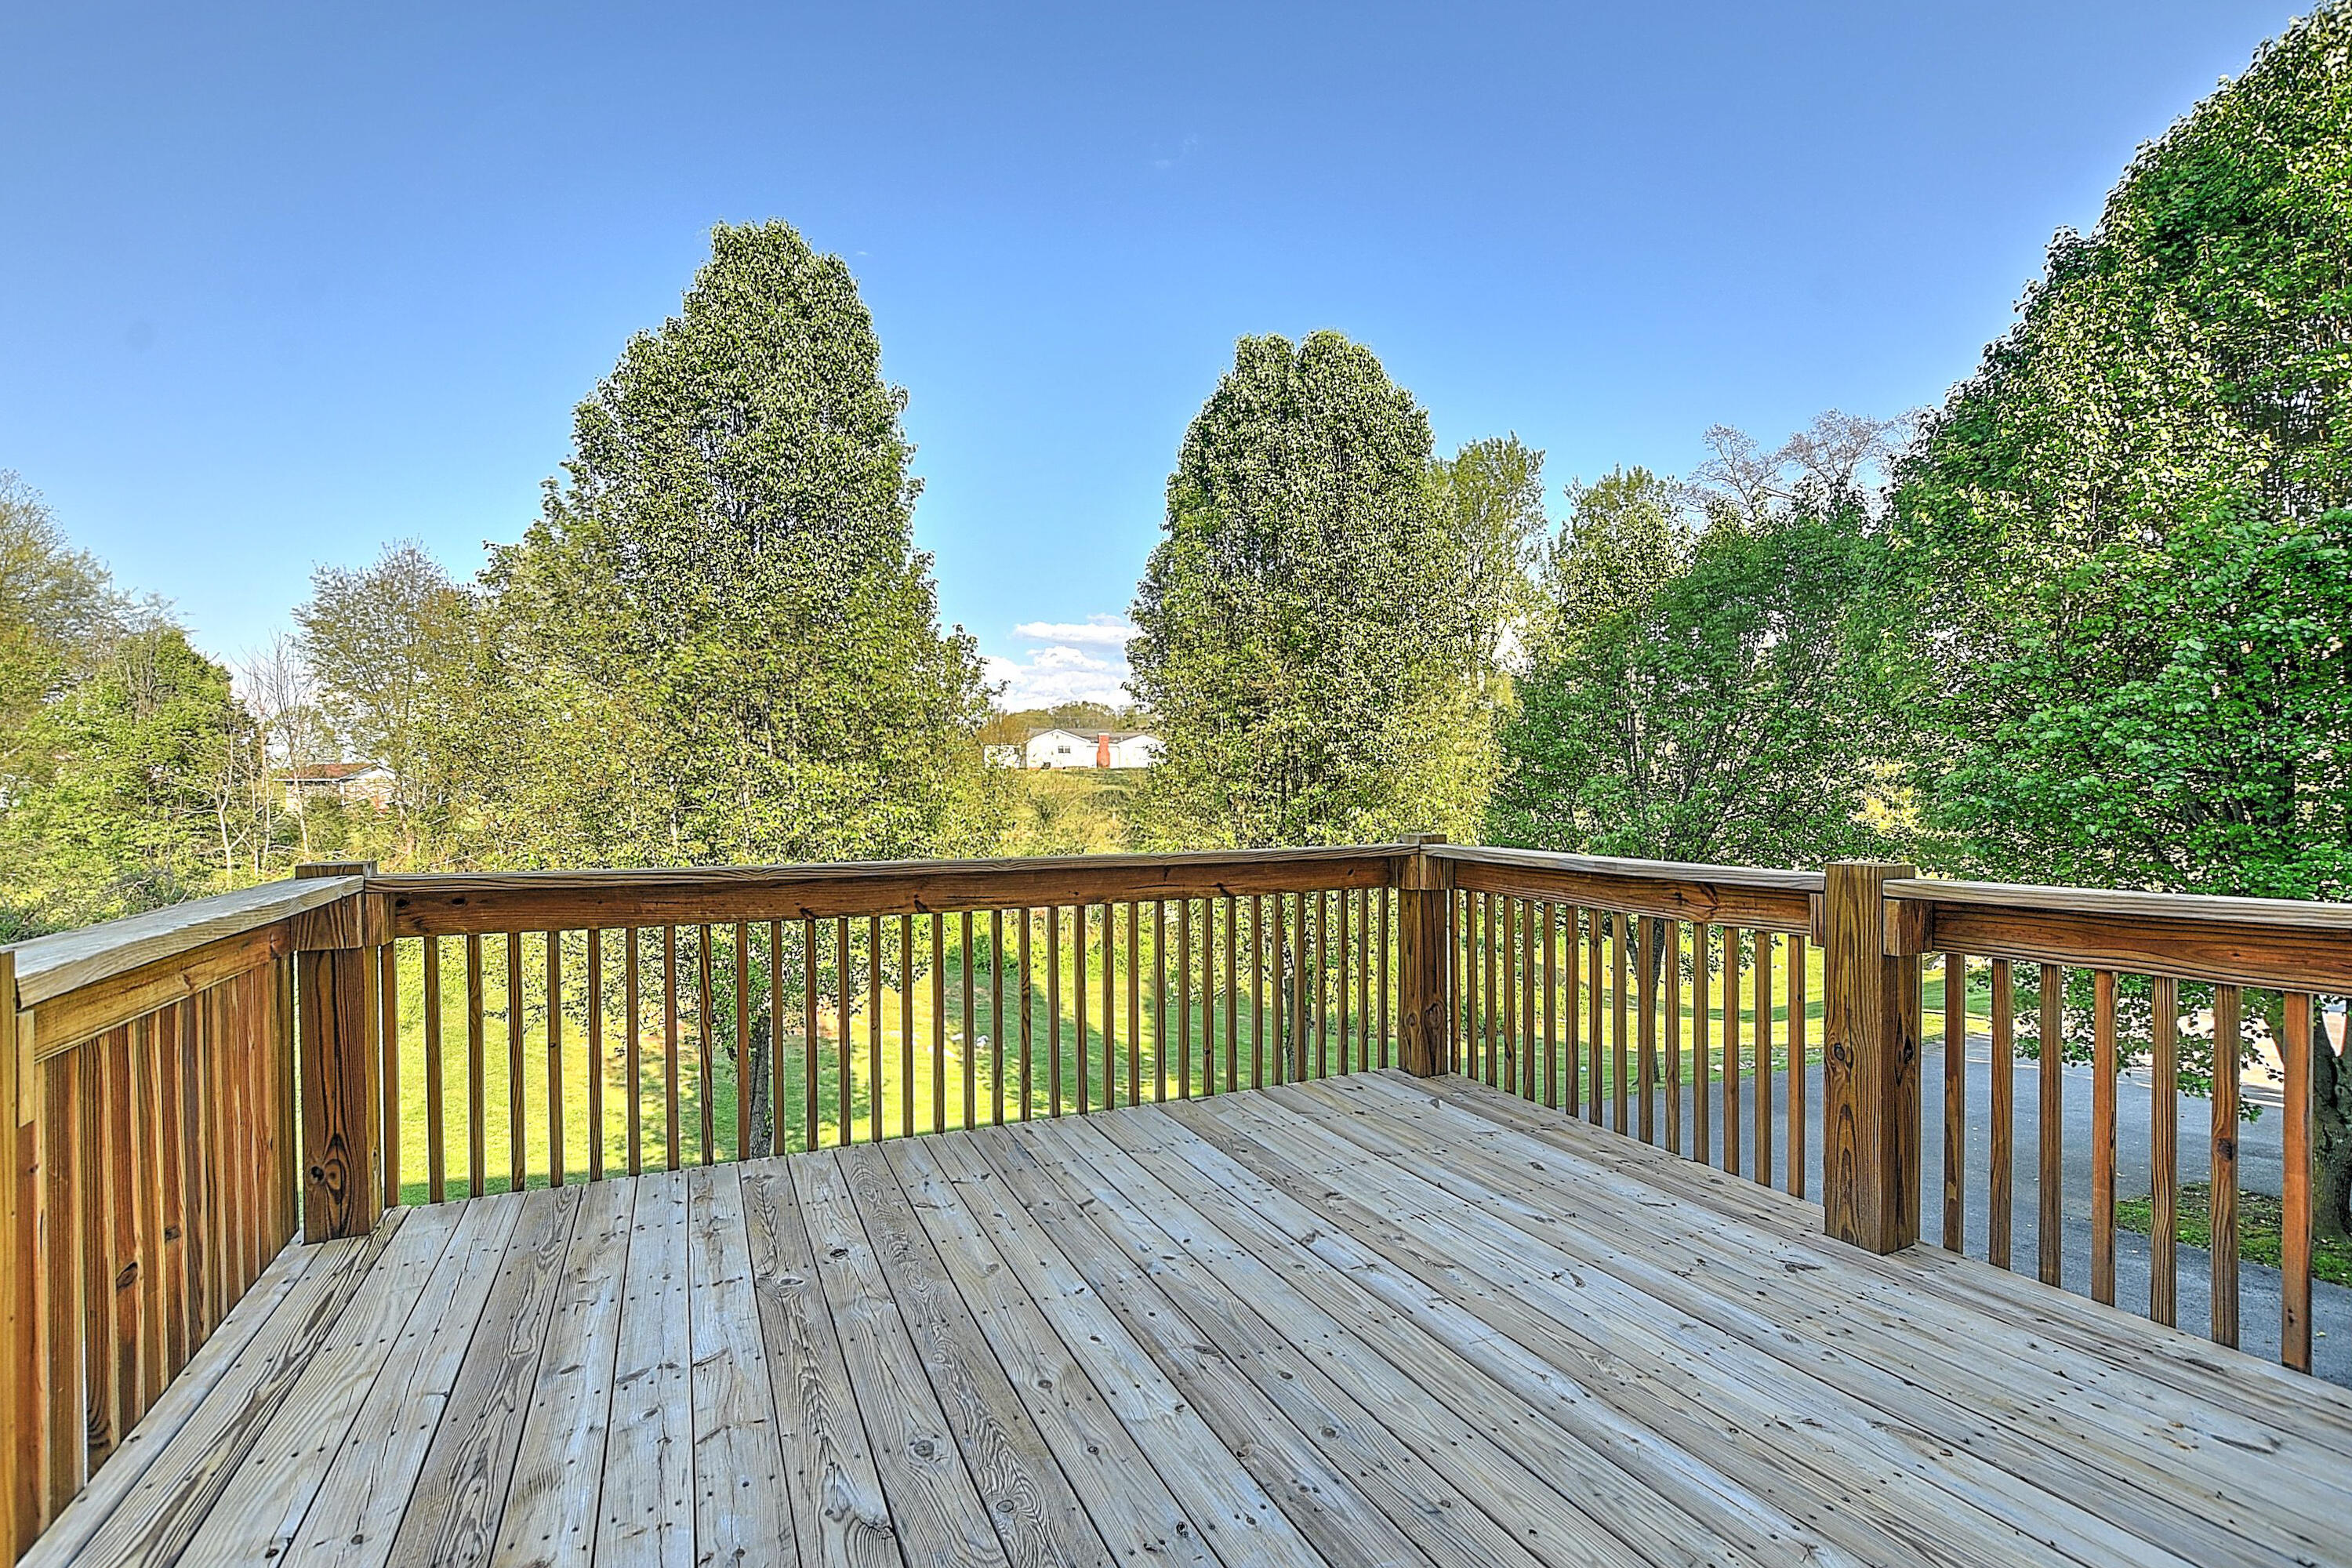 152 Gray Station Road, Gray, Tennessee 37615, 2 Bedrooms Bedrooms, ,2 BathroomsBathrooms,Condominium,For Sale,152 Gray Station Road,3,9921645